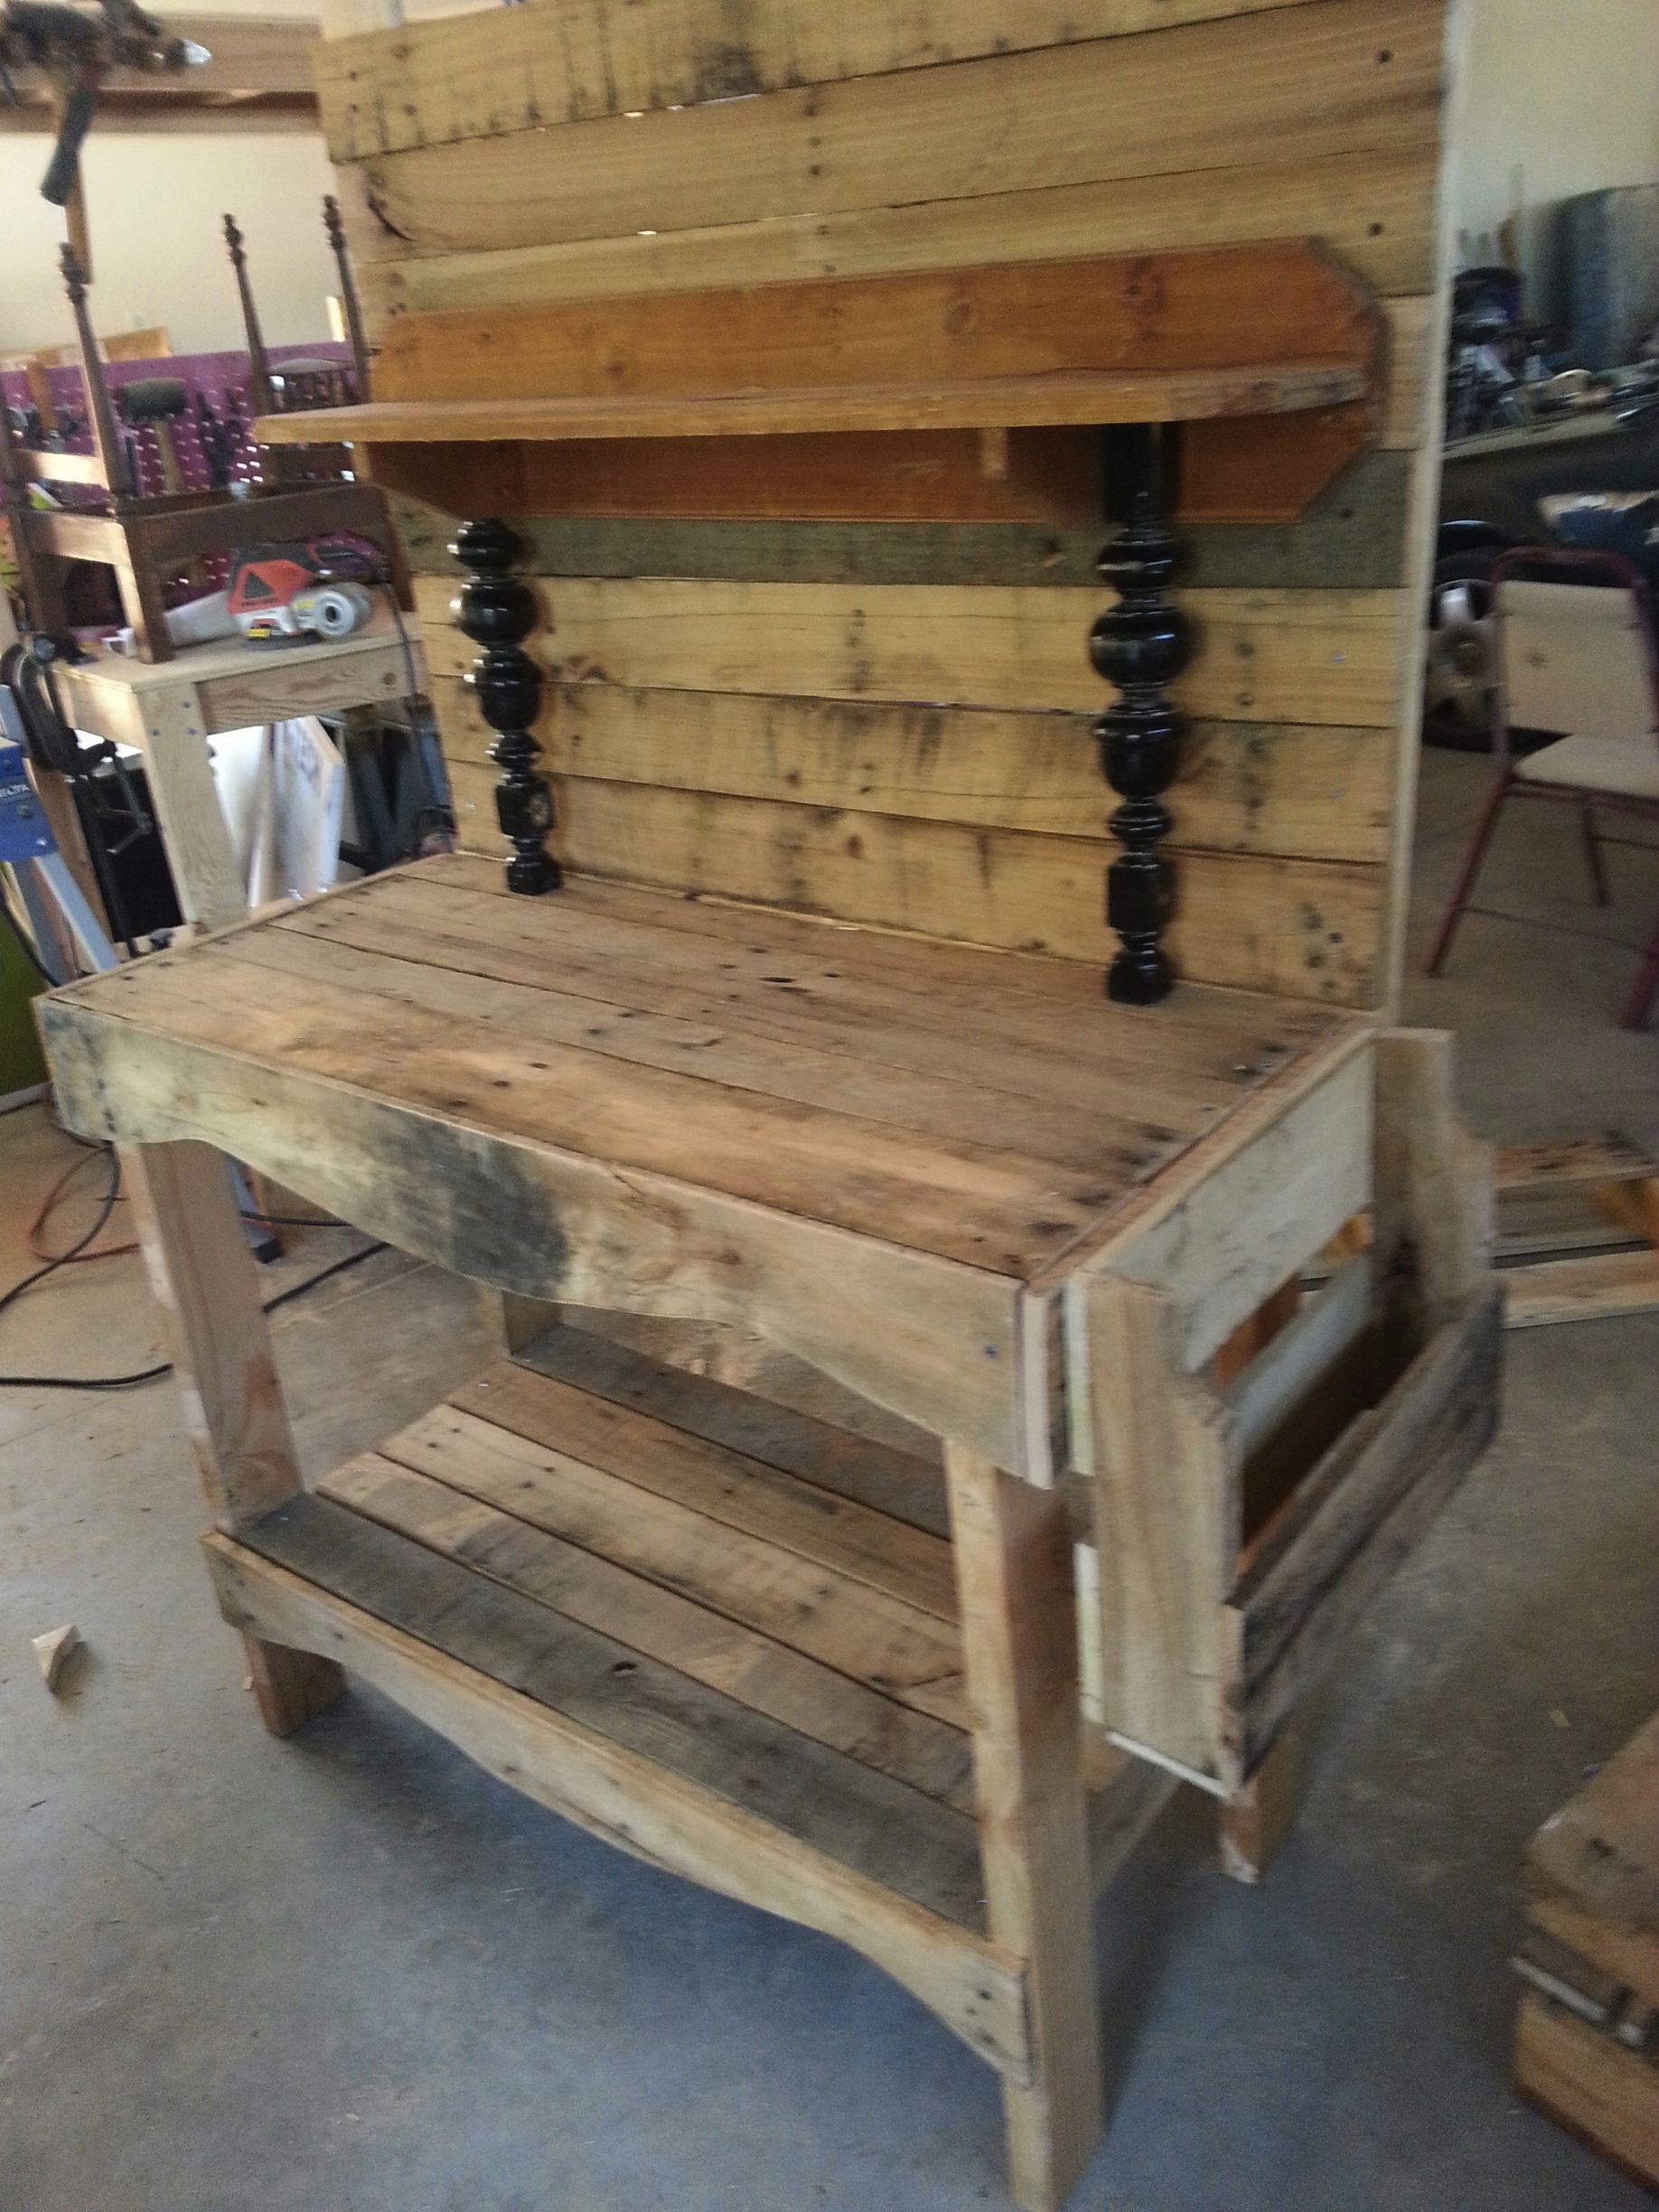 Plans Pallet Potting Bench Free Download woodworking plans ...